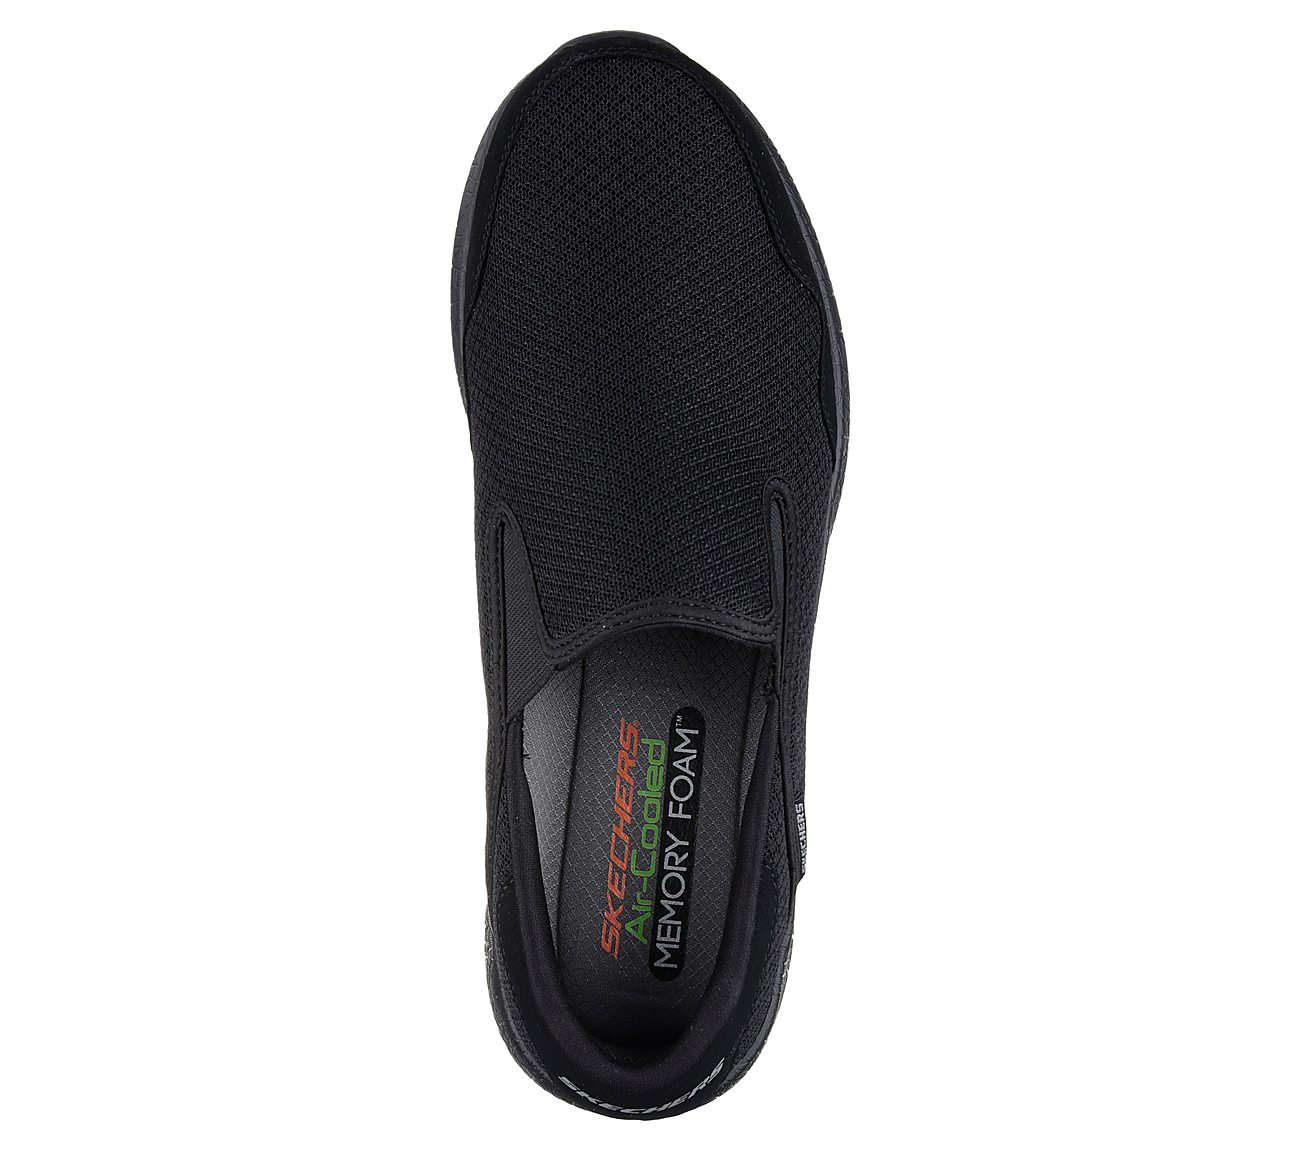 c0eb785b2d62 Buy SKECHERS Burst - Just In Time SKECHERS Sport Shoes only £54.00